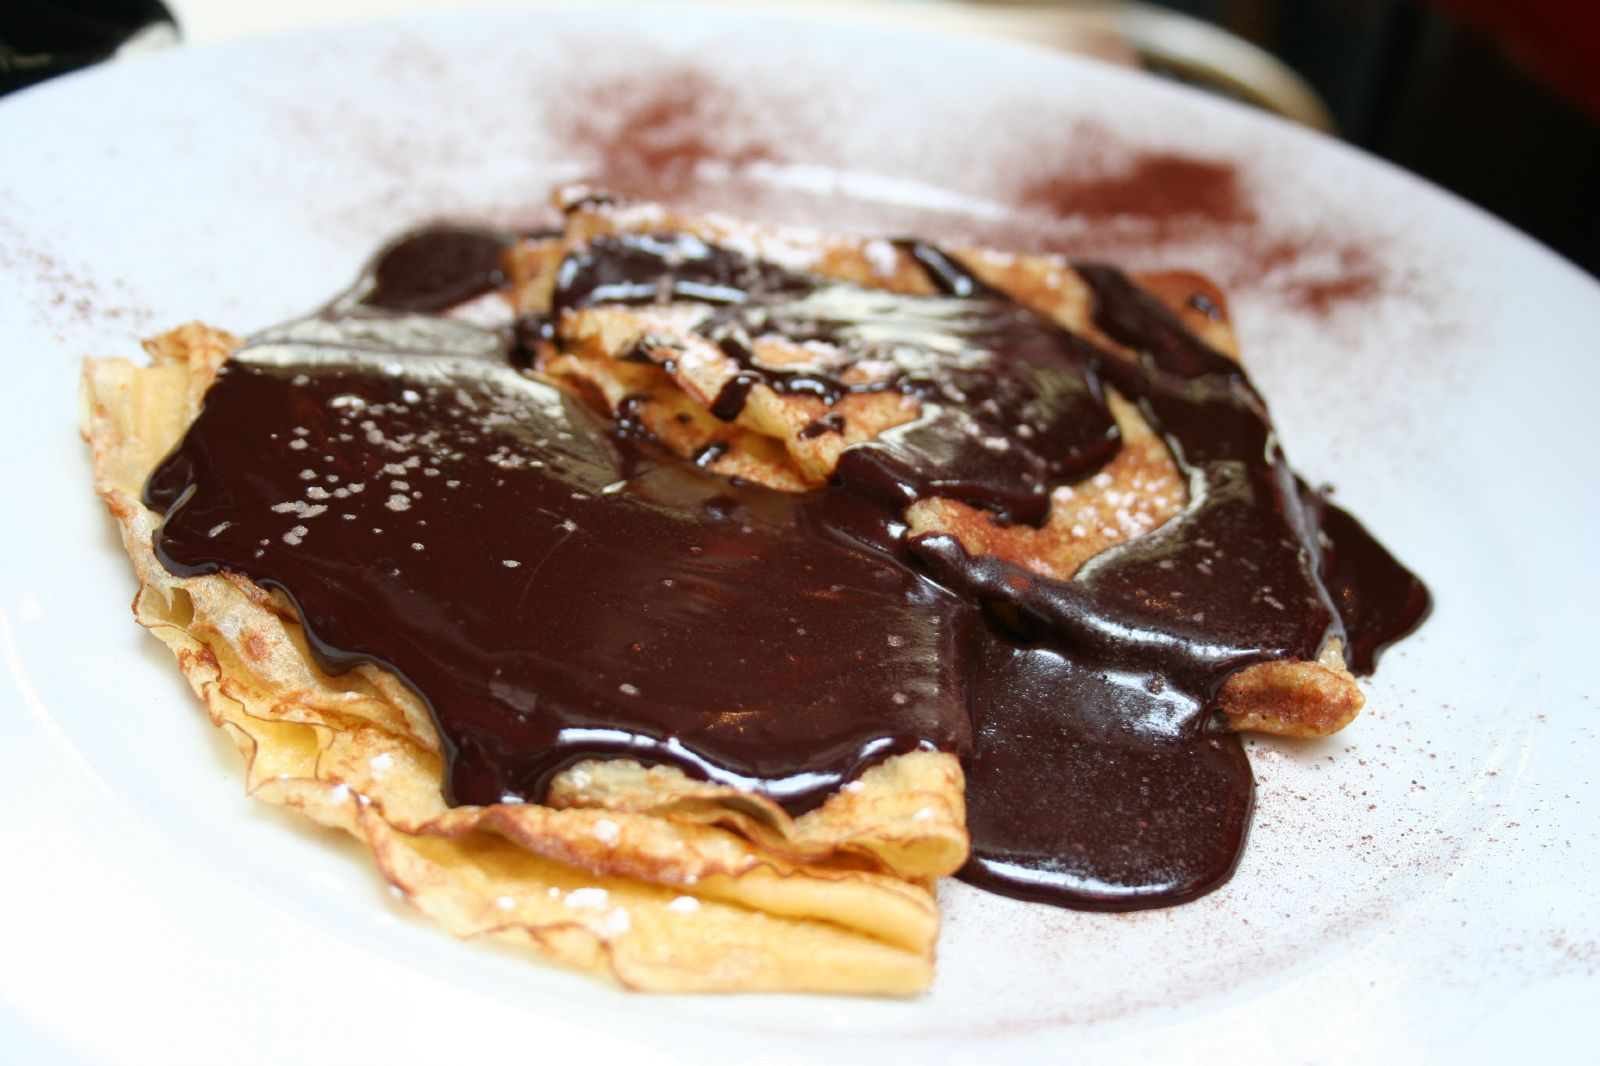 File:Crepes con chocolate.jpg - Wikimedia Commons